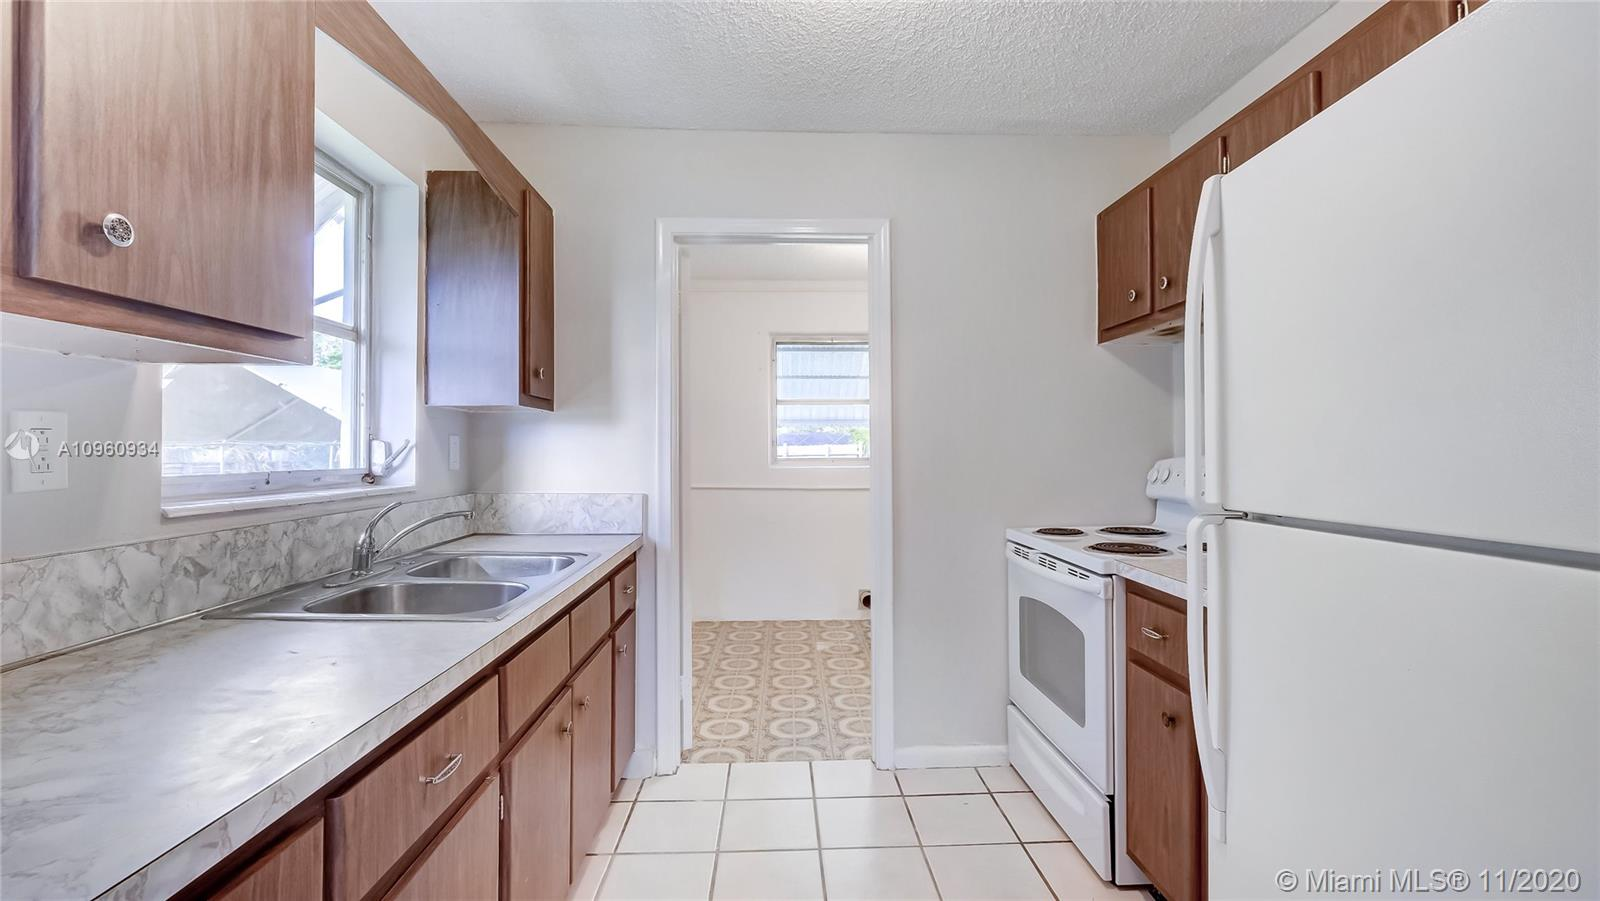 509 NW 15th St, Homestead, Florida 33030, 3 Bedrooms Bedrooms, ,2 BathroomsBathrooms,Residential,For Sale,509 NW 15th St,A10960934